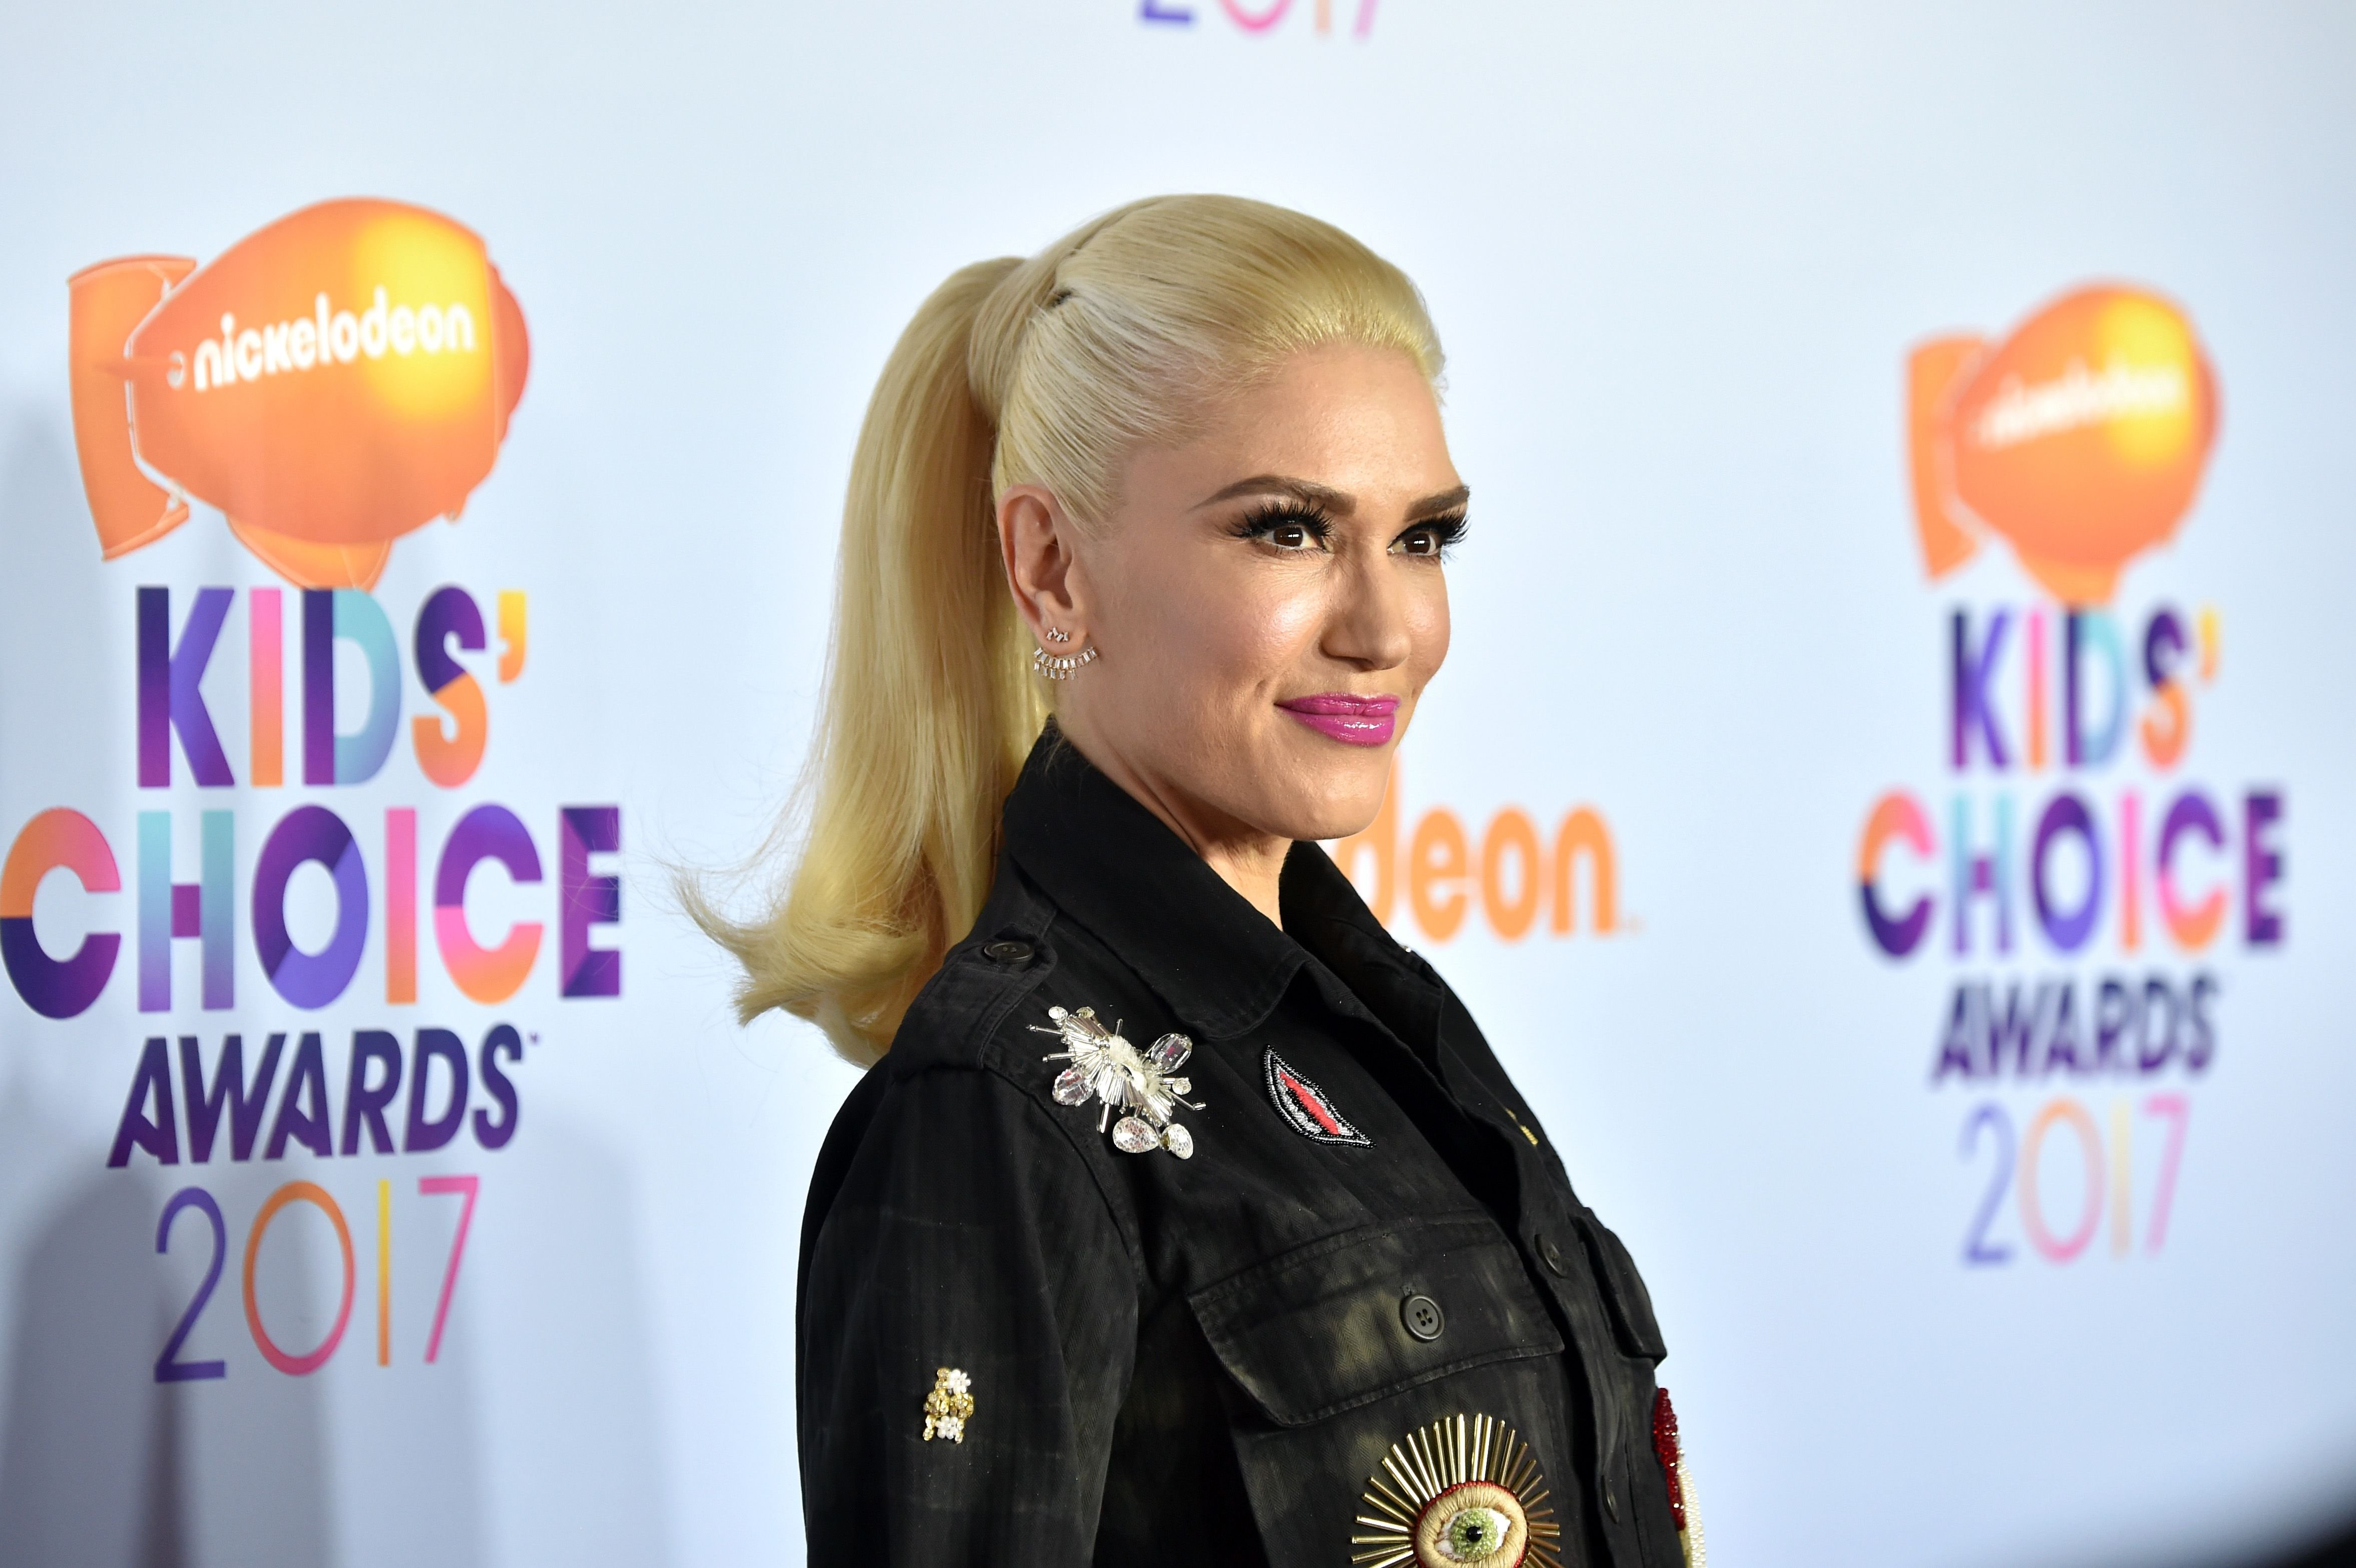 Singer Gwen Stefani at Nickelodeon's 2017 Kids' Choice Awards at USC Galen Center on March 11, 2017 | Photo: Getty Images